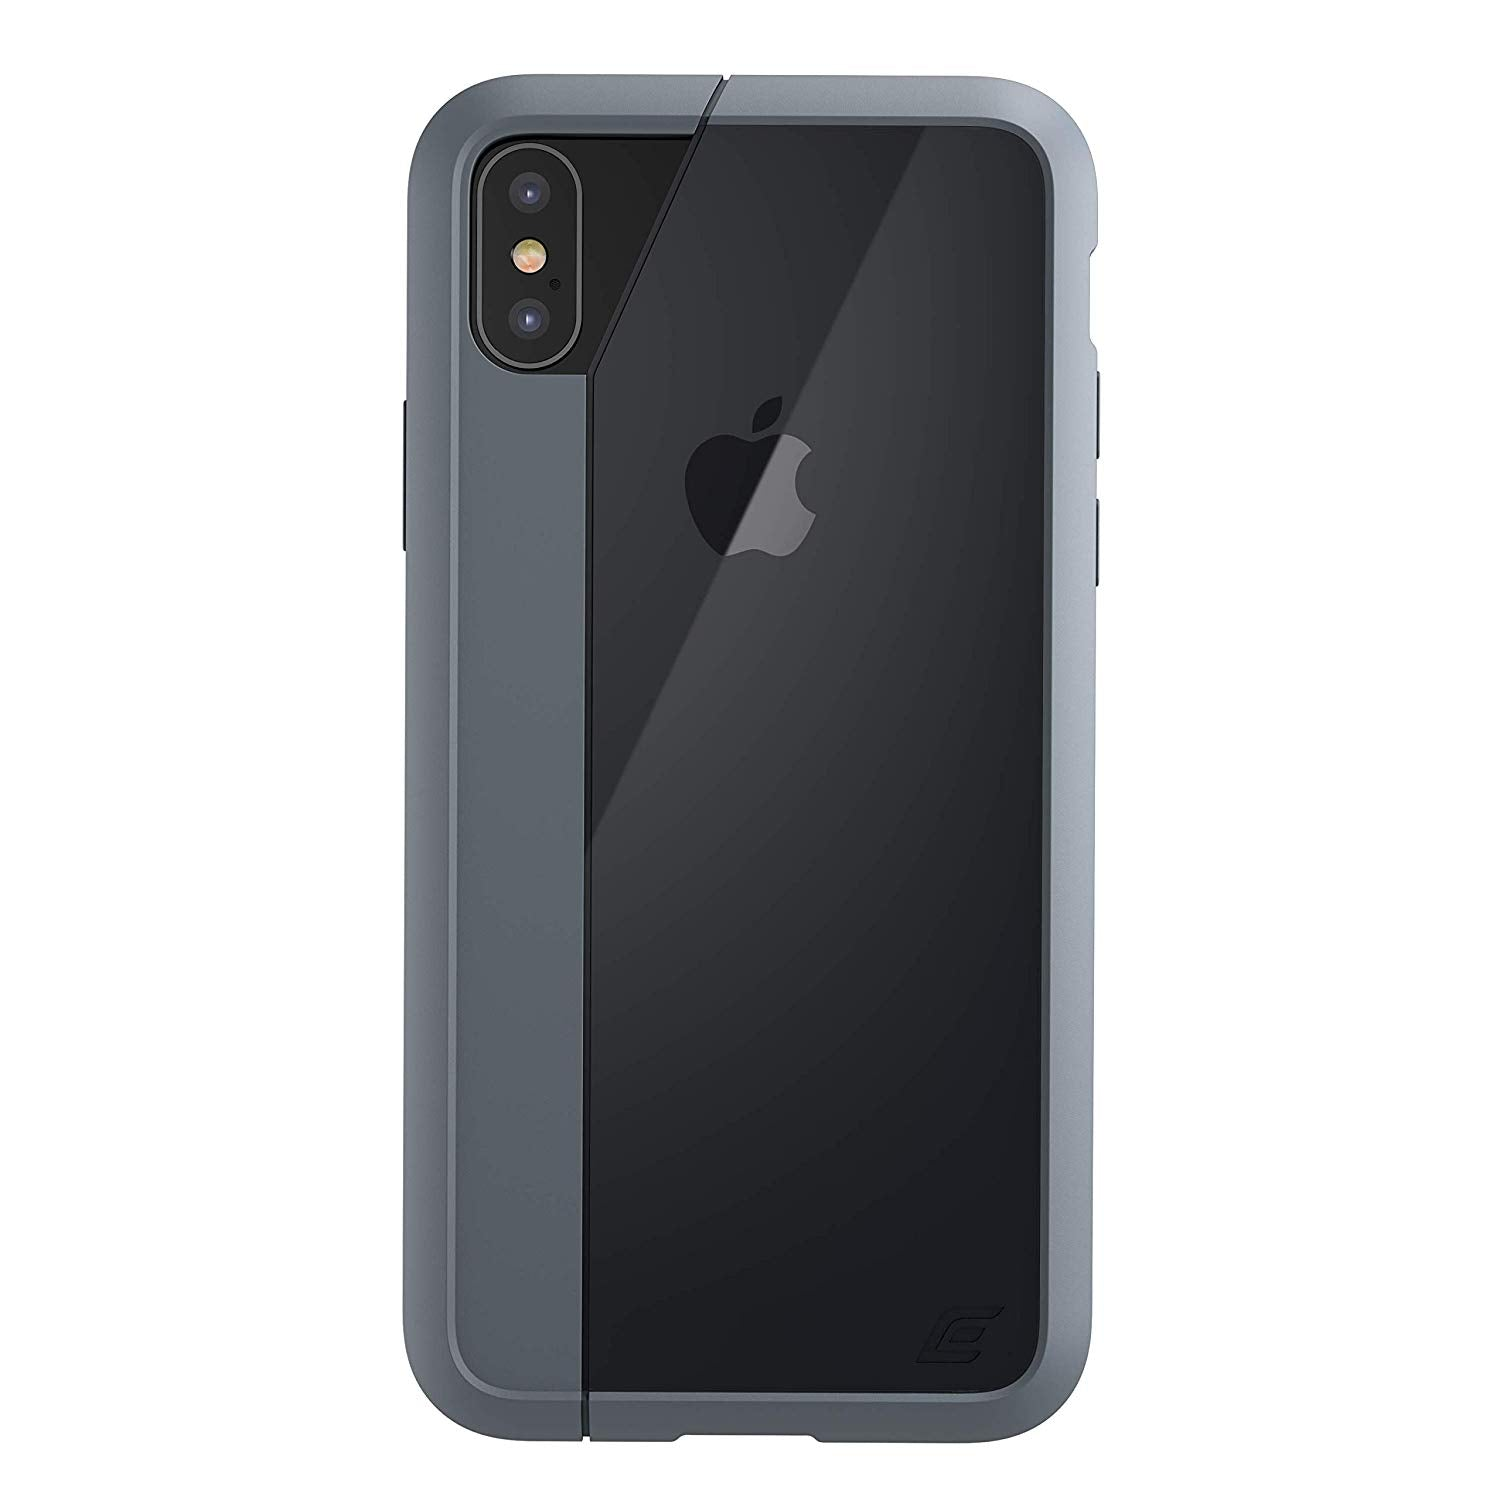 Element Case Illusion Drop Tested case for iPhone Xs Max - Grey (EMT-322-191E-03) get best offers deals at buythevalue.in